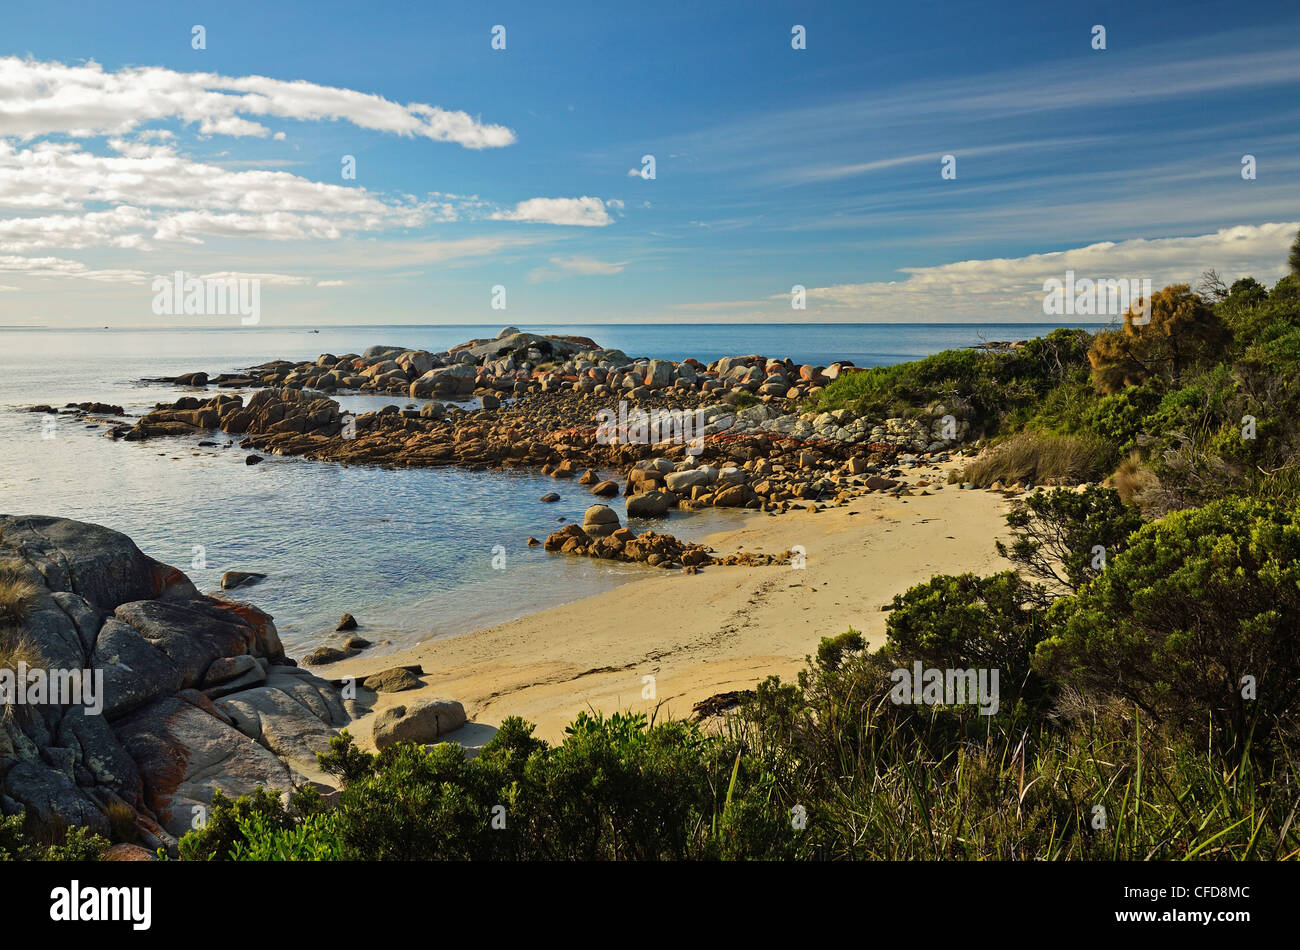 Beach at St. Helens Conservation Area, St. Helens, Tasmania, Australia, Pacific - Stock Image